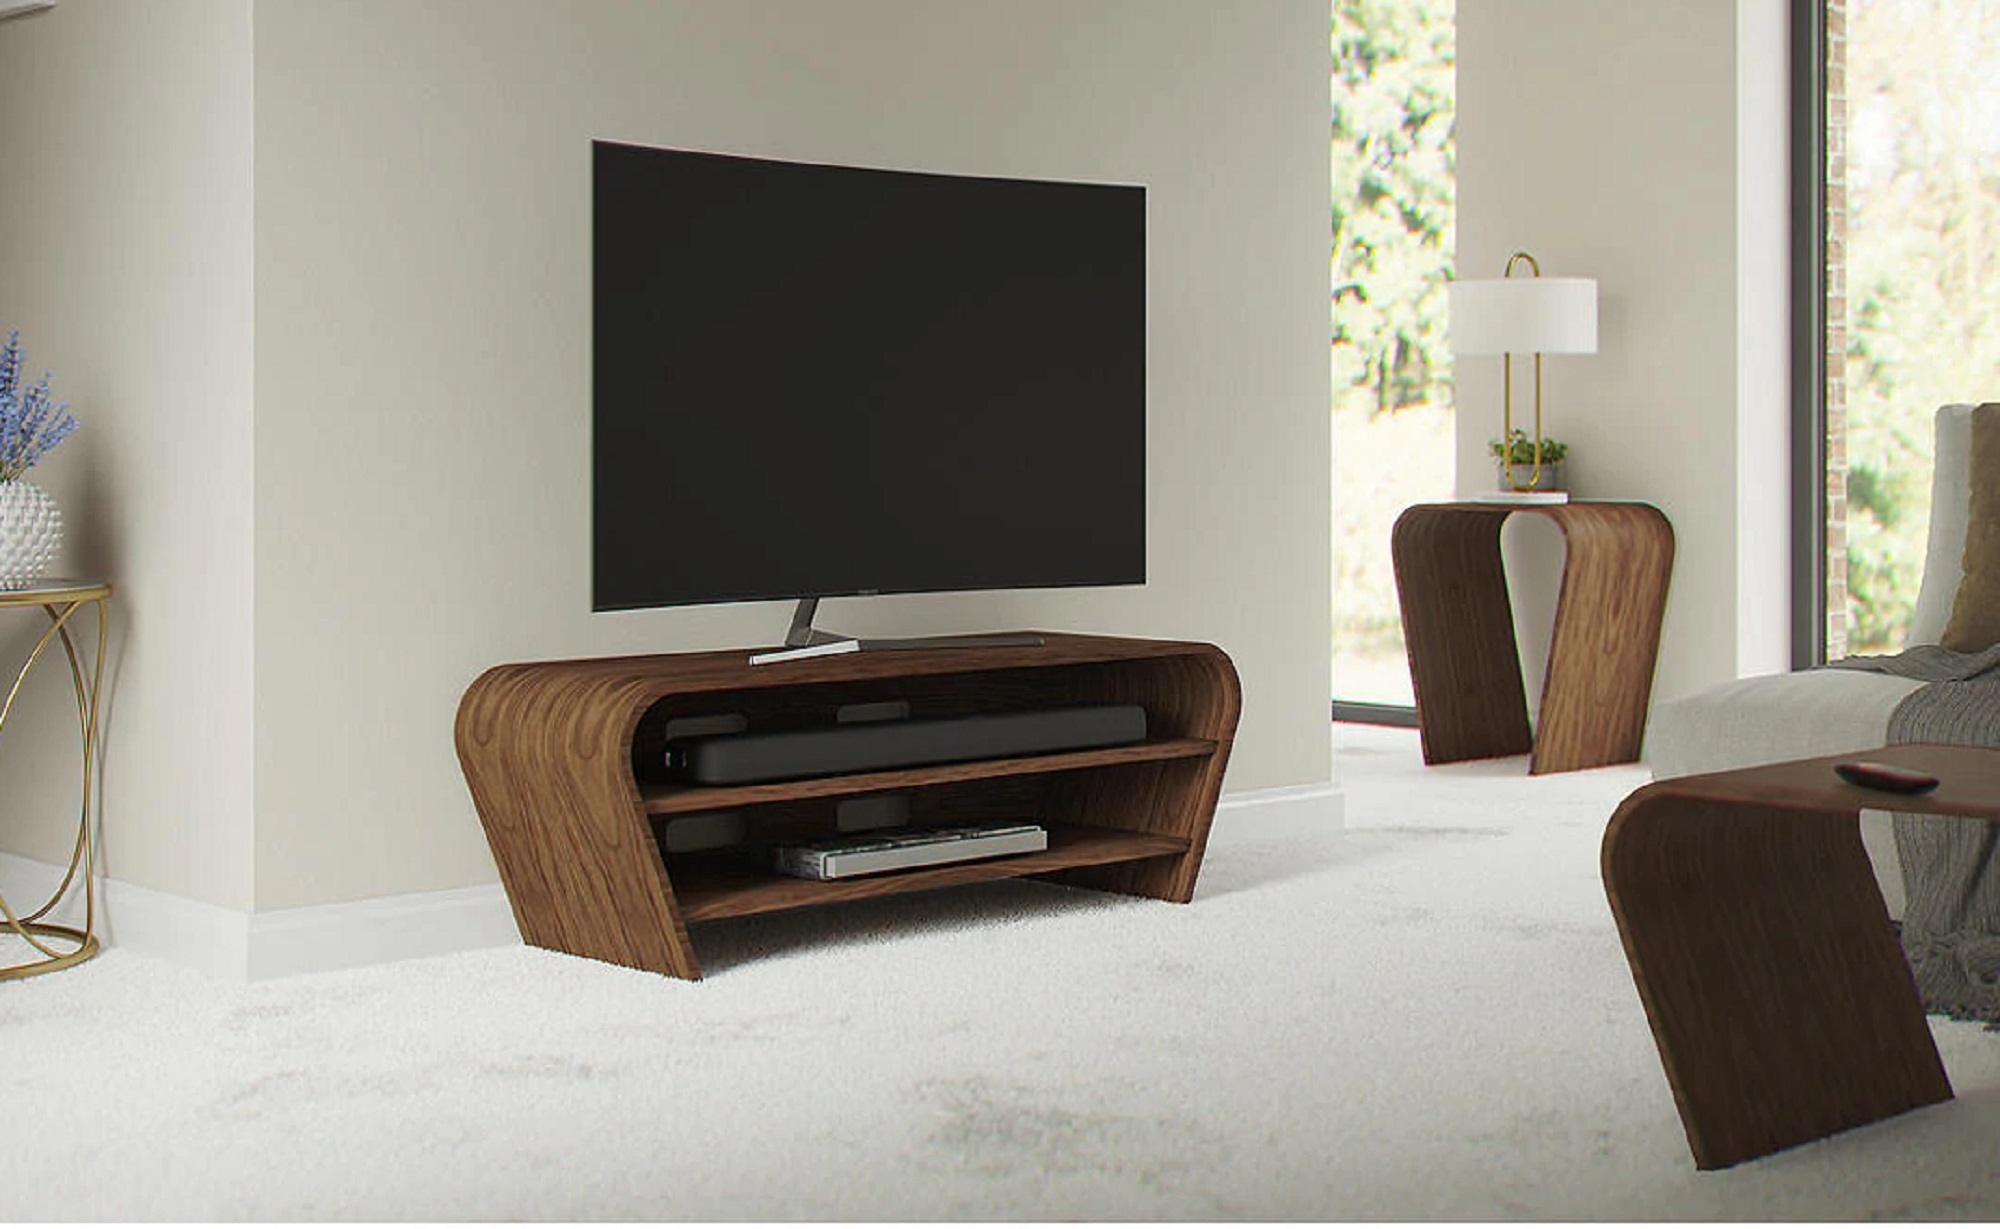 Best Tv Stands 2020 7 Top Rated Tv Units To Make Box Set Bingeing Better Real Homes